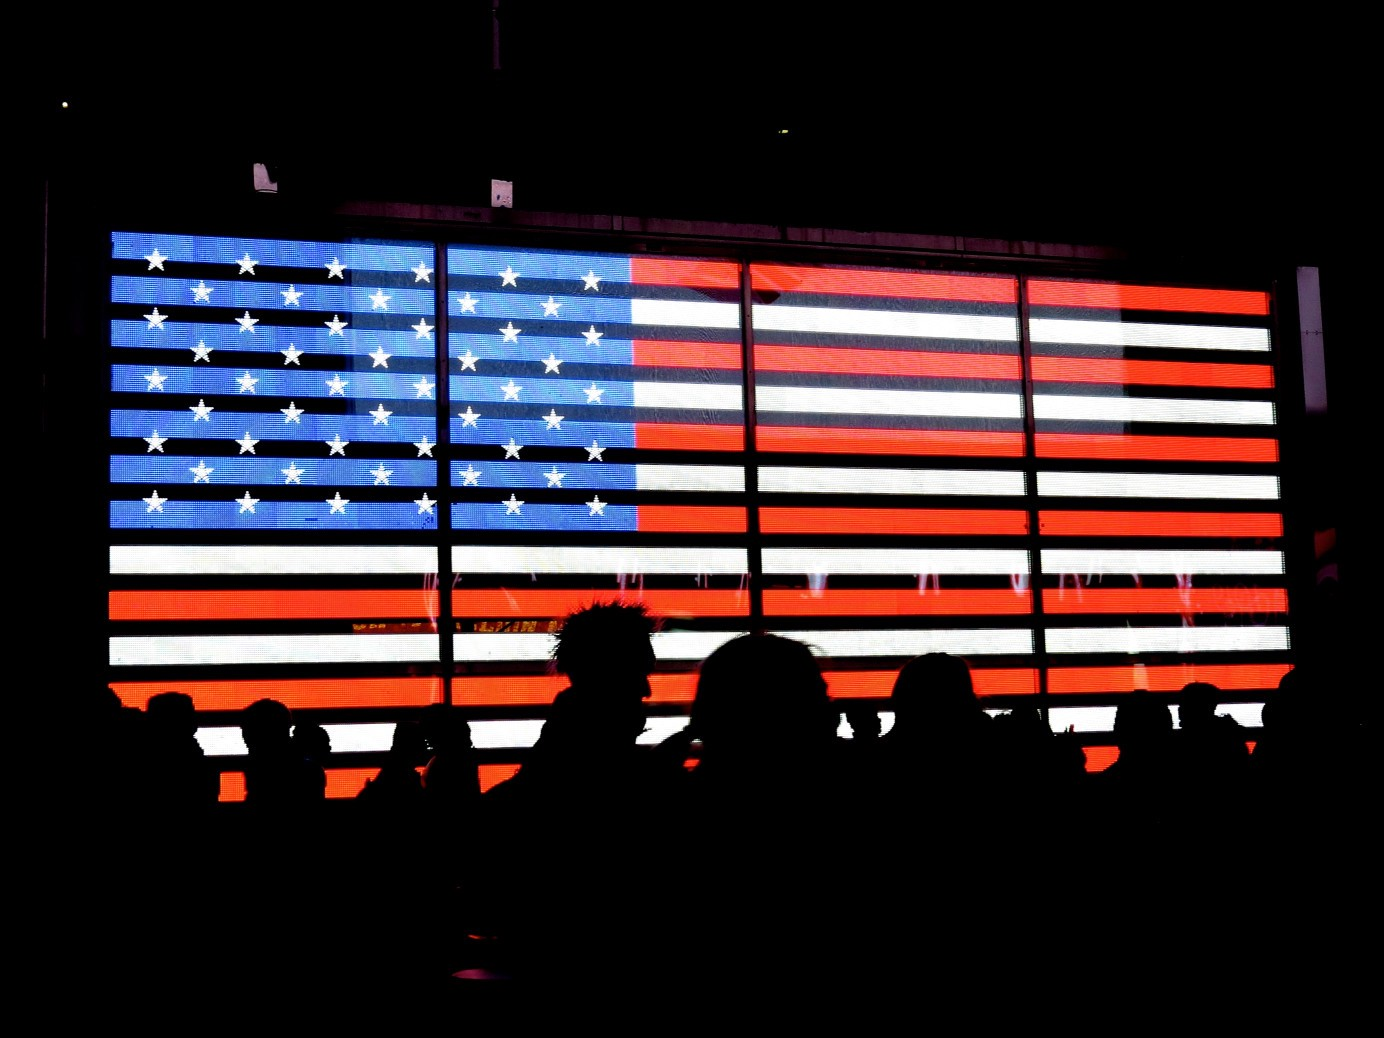 A group of people in silhouette in front of a projection of the American flag.